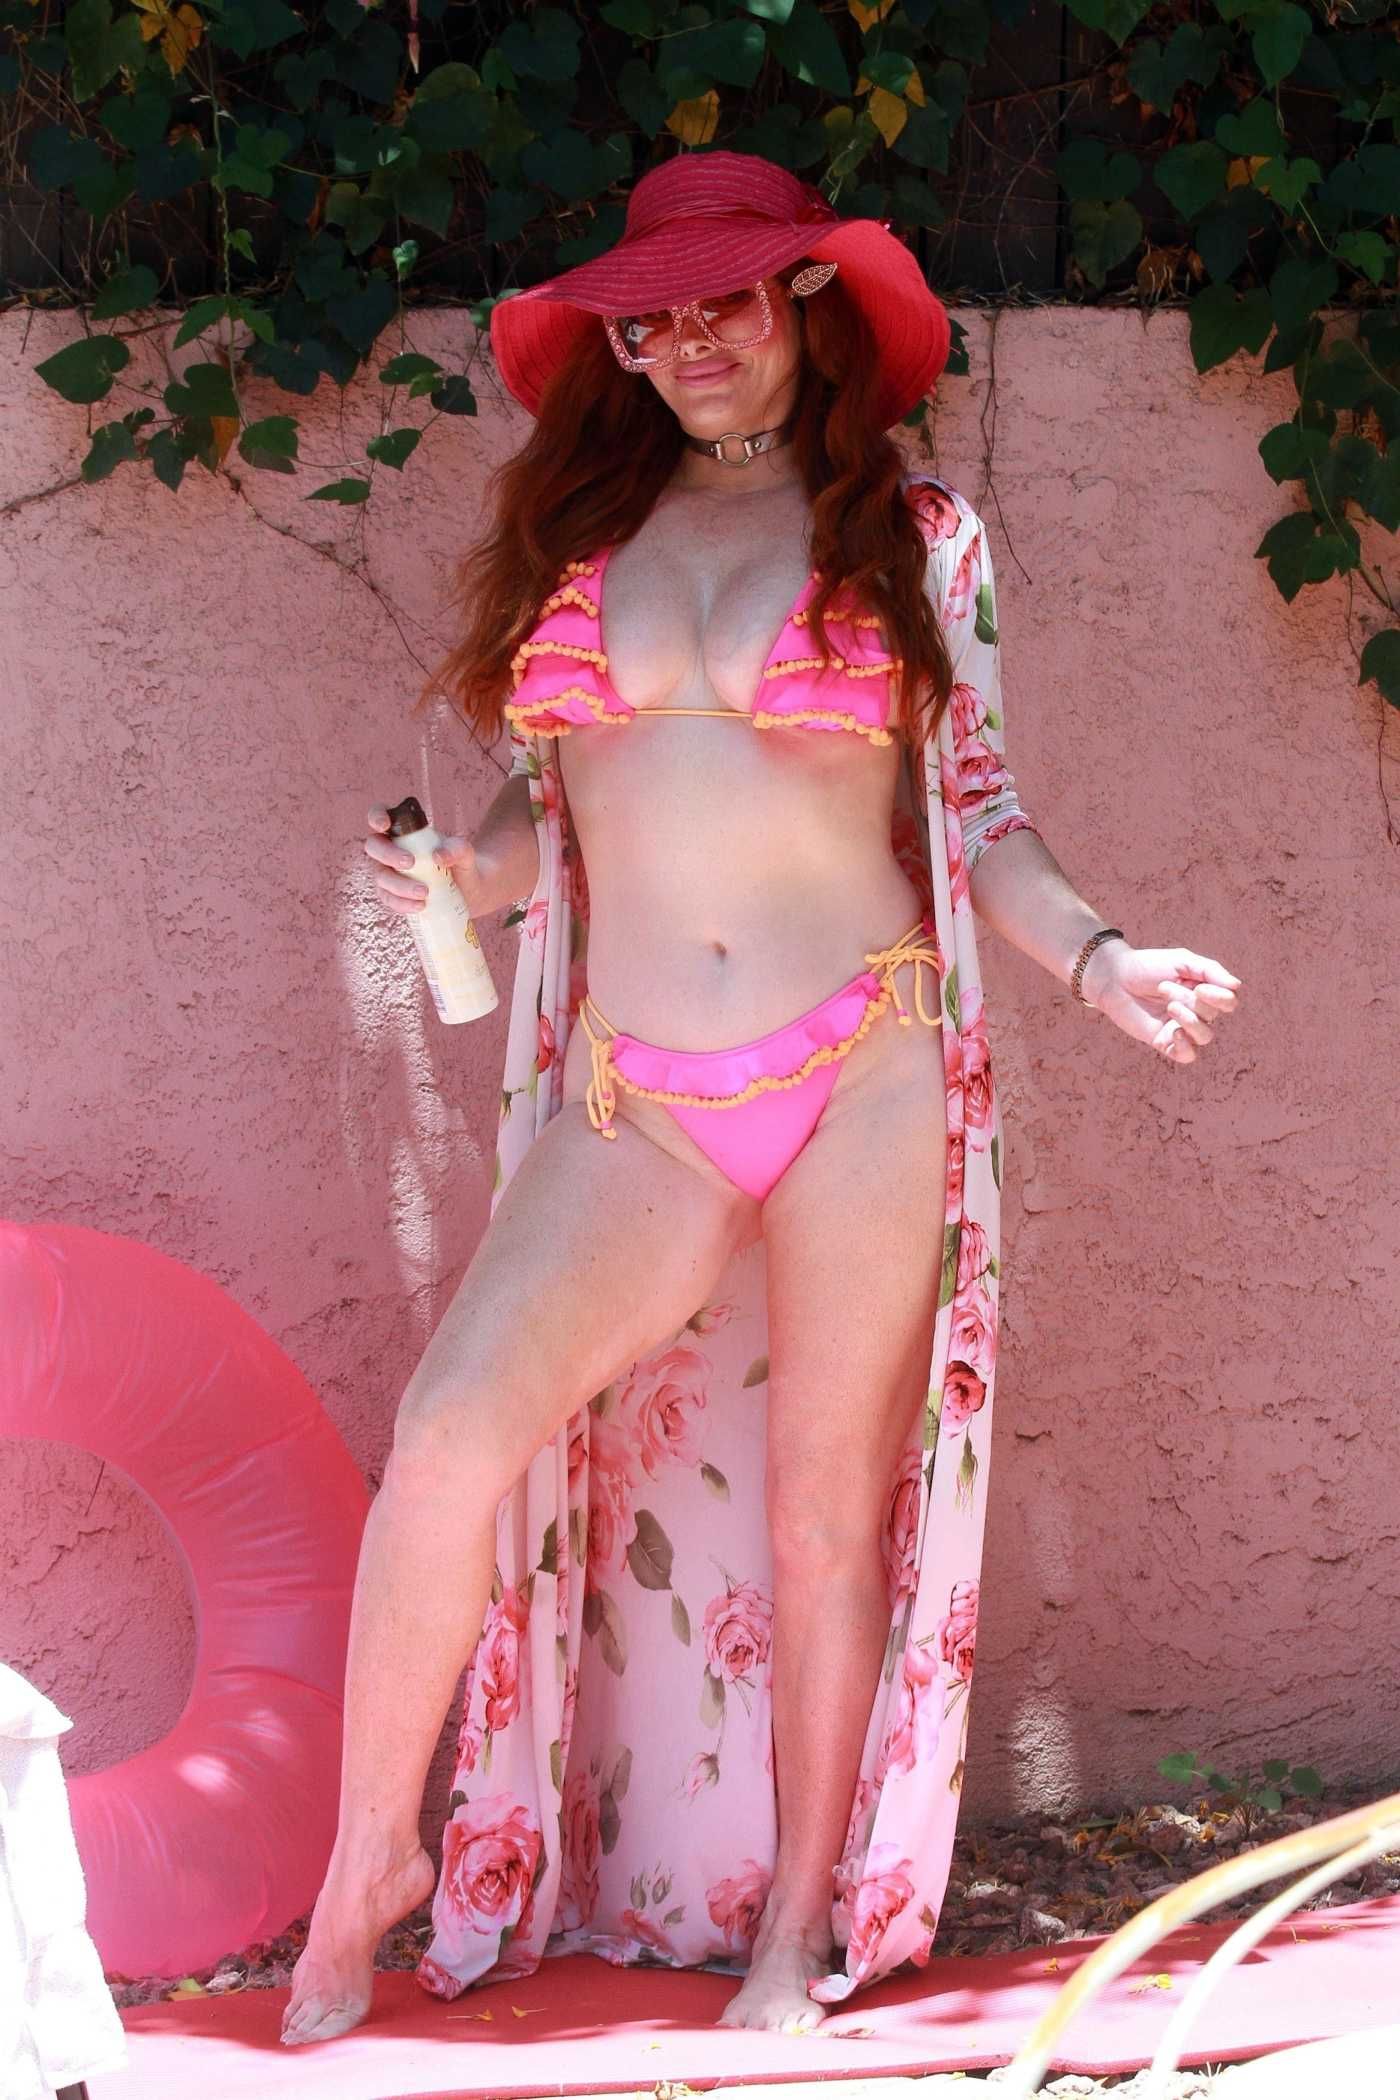 Phoebe Price in a Pink Bikini by the Poolside in Los Angeles 05/24/2020